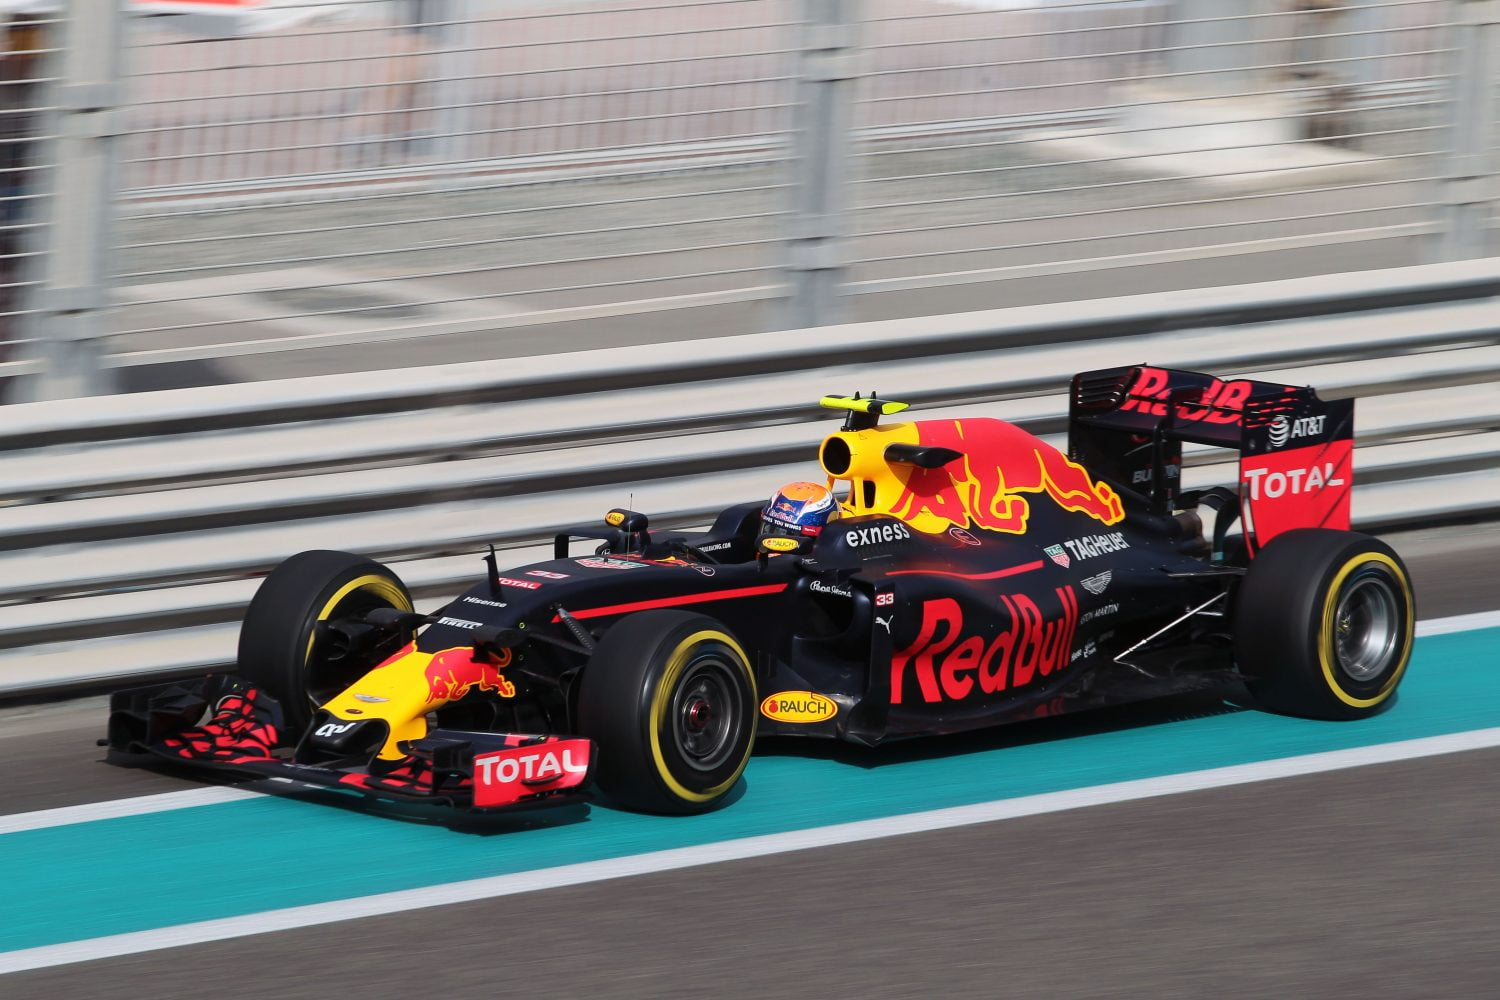 Formula One World Championship 2016, Round 21, Abu Dhabi Grand Prix, Abu Dhabi, United Arab Emirates, Friday 25 November 2016 - Max Verstappen (NLD) Red Bull Racing RB12.